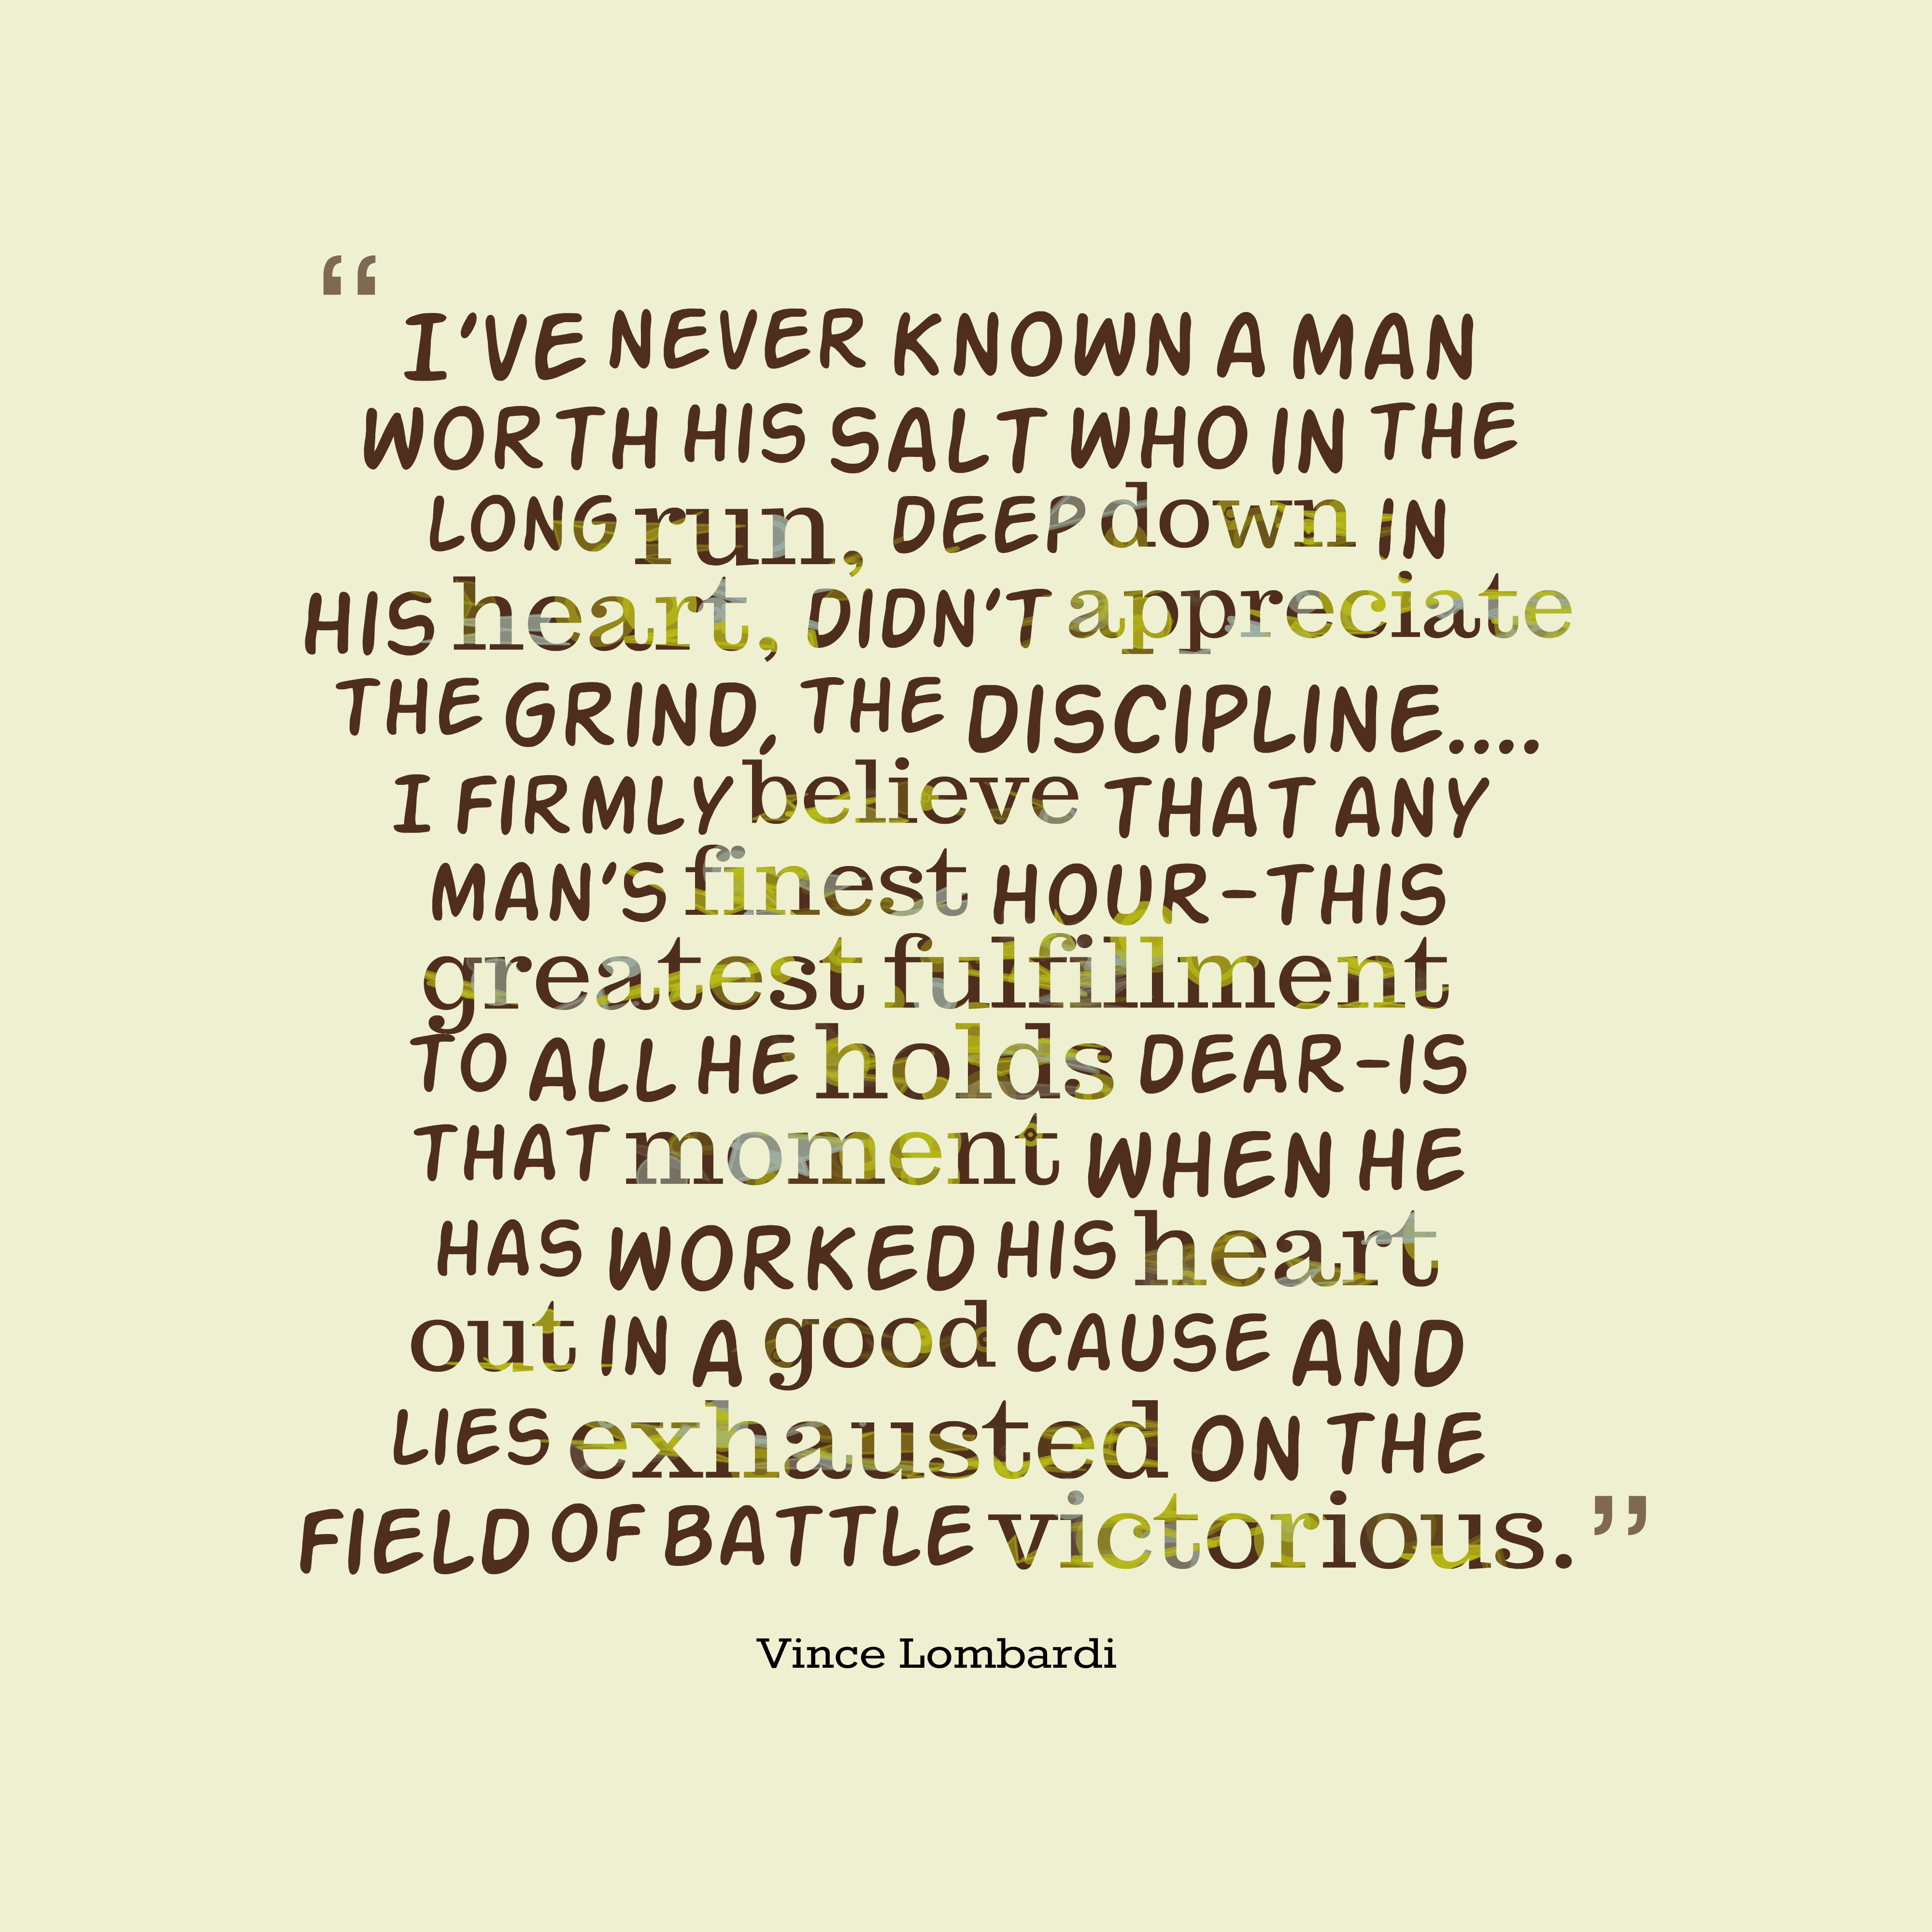 Quotes image of I've never known a man worth his salt who in the long run, deep down in his heart, didn't appreciate the grind, the discipline.... I firmly believe that any man's finest hour-this greatest fulfillment to all he holds dear-is that moment when he has worked his heart out in a good cause and lies exhausted on the field of battle victorious.